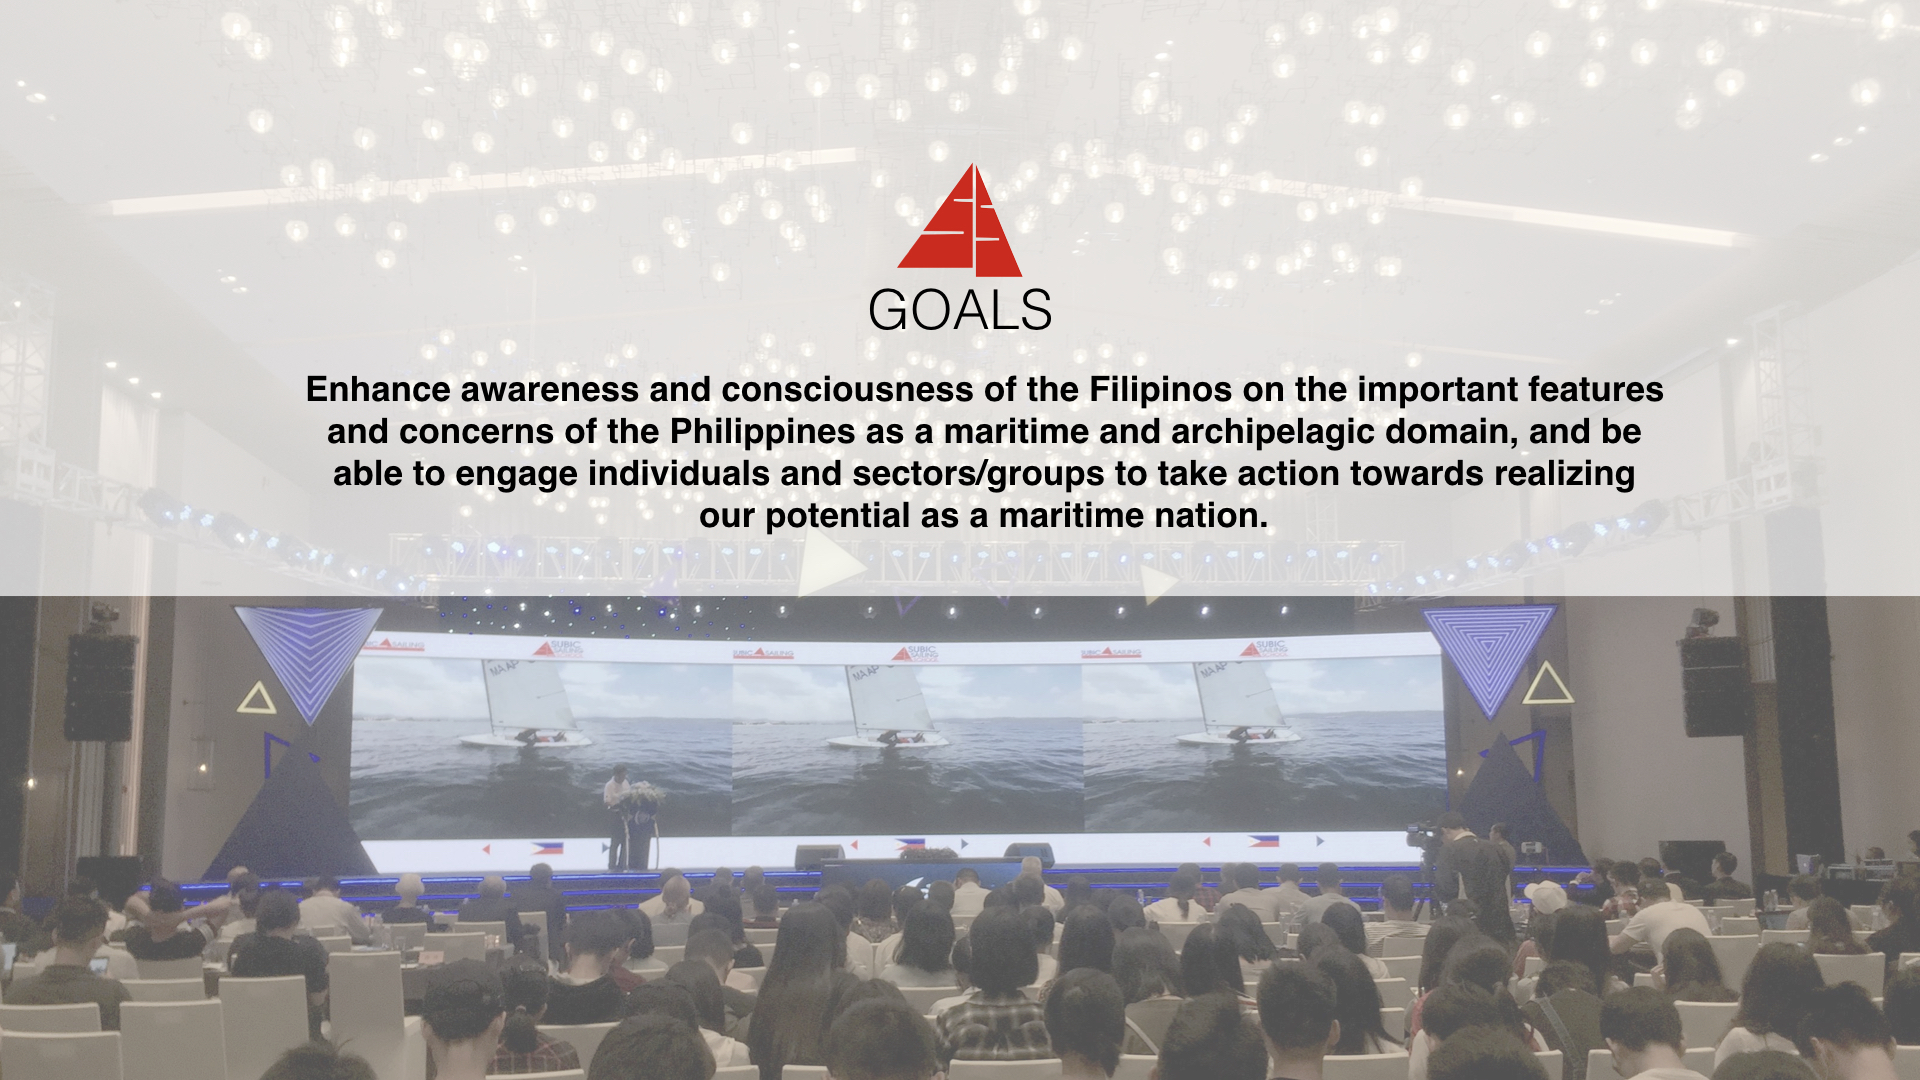 Enhance awareness of the filipinos and realize our potential as a maritime nation.